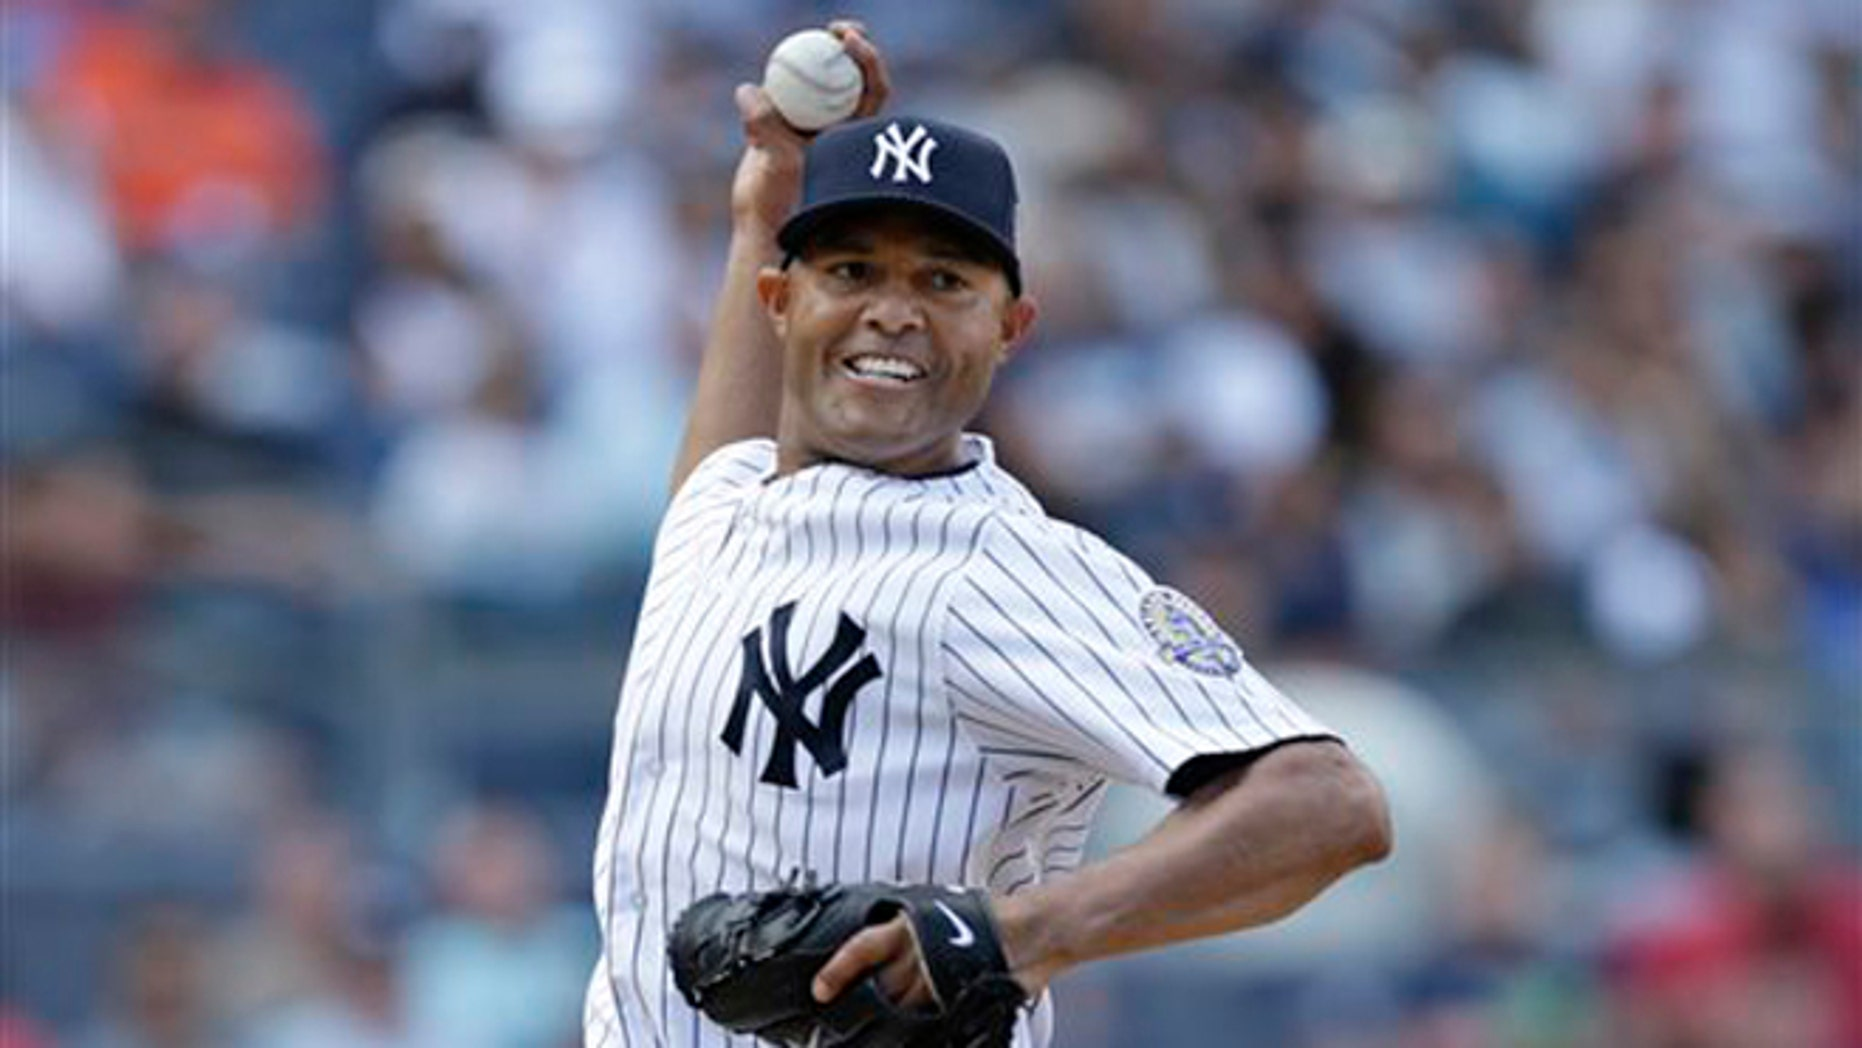 New York Yankees relief pitcher Mariano Rivera (42) throws to first on a pickoff  move in the eighth inning of a baseball game against the San Francisco Giants in New York.